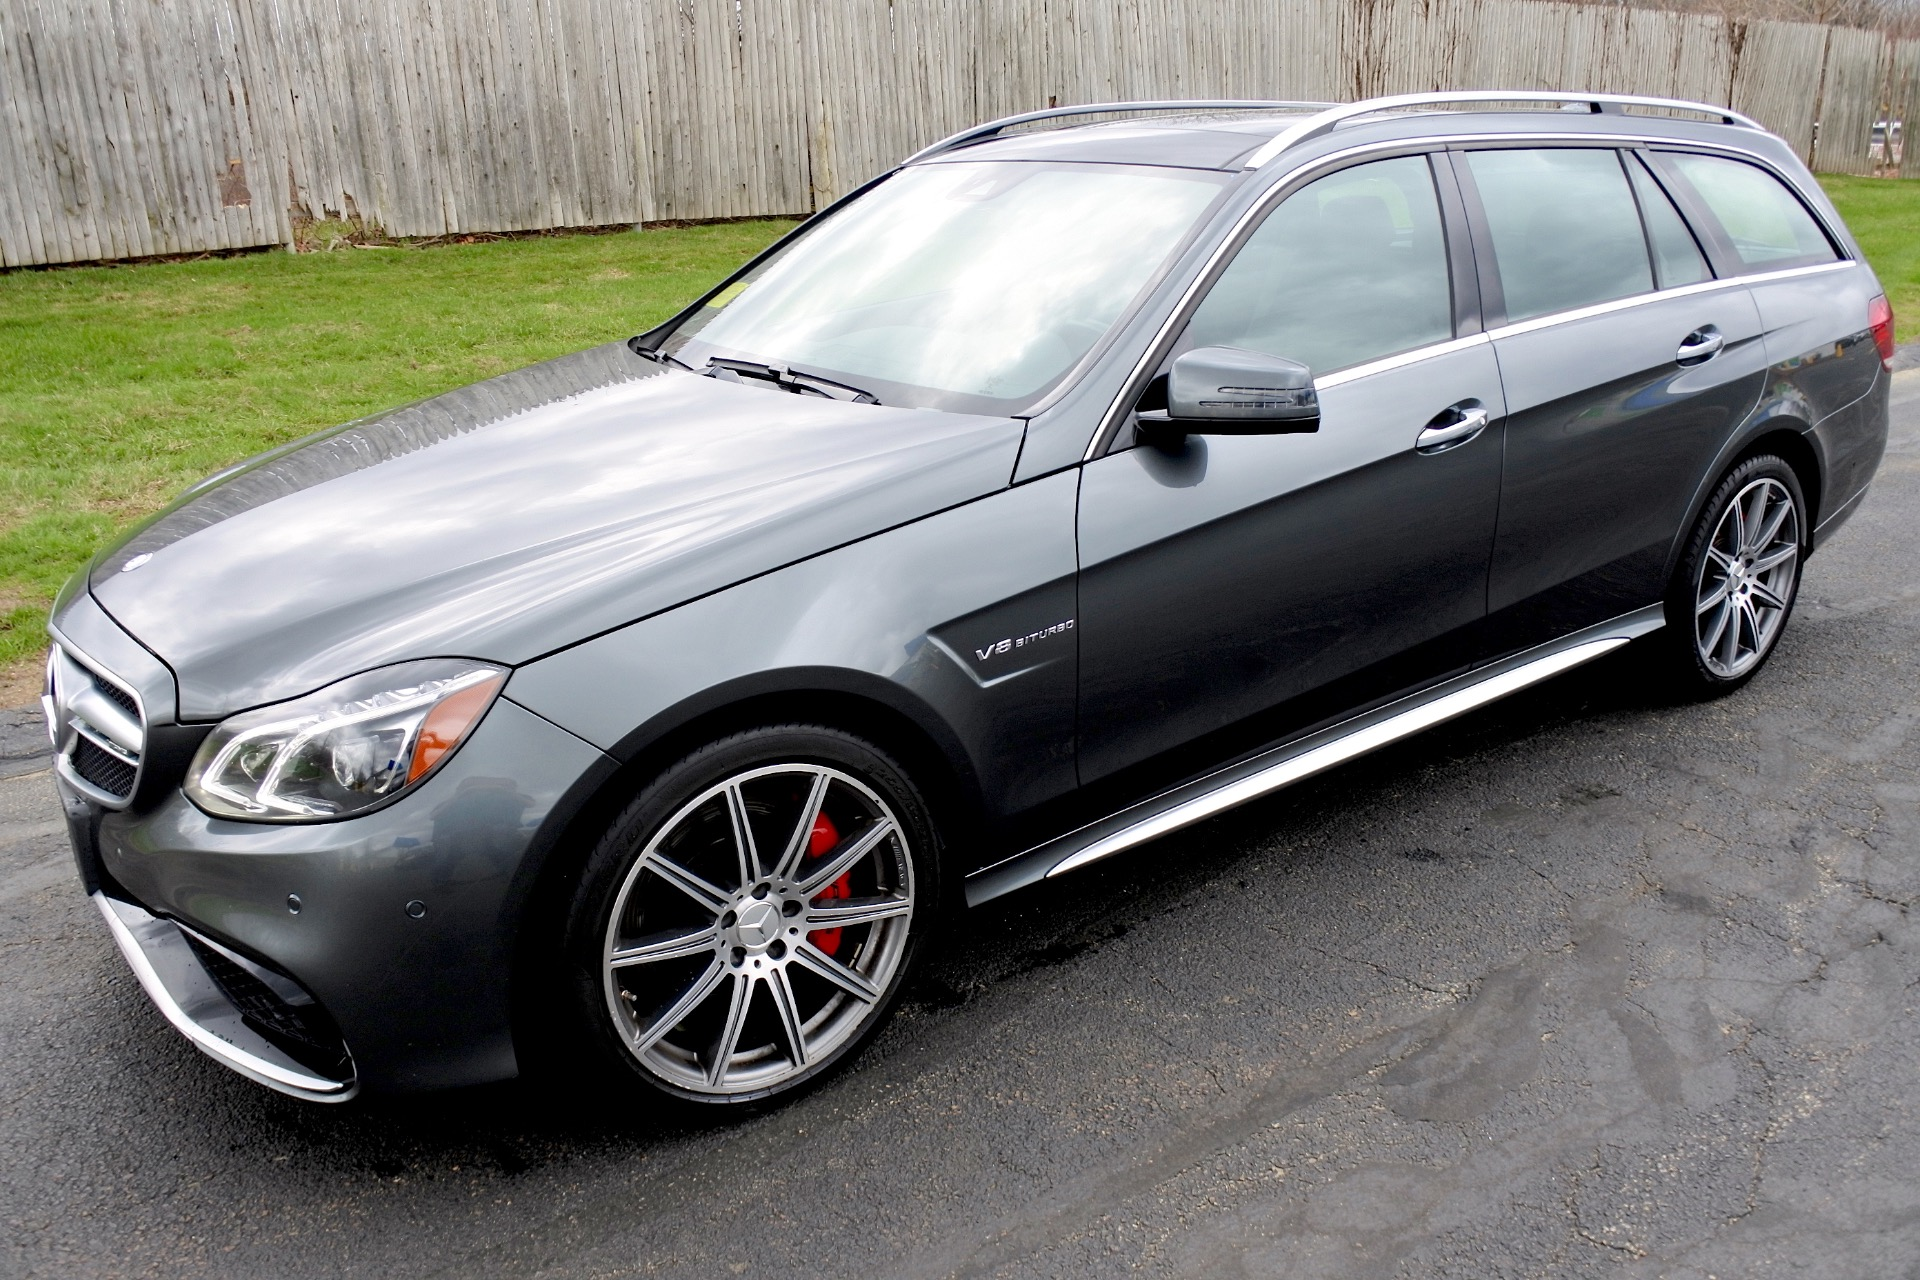 Used 2014 Mercedes-Benz E-class E63 S AMG Wagon 4MATIC Used 2014 Mercedes-Benz E-class E63 S AMG Wagon 4MATIC for sale  at Metro West Motorcars LLC in Shrewsbury MA 1